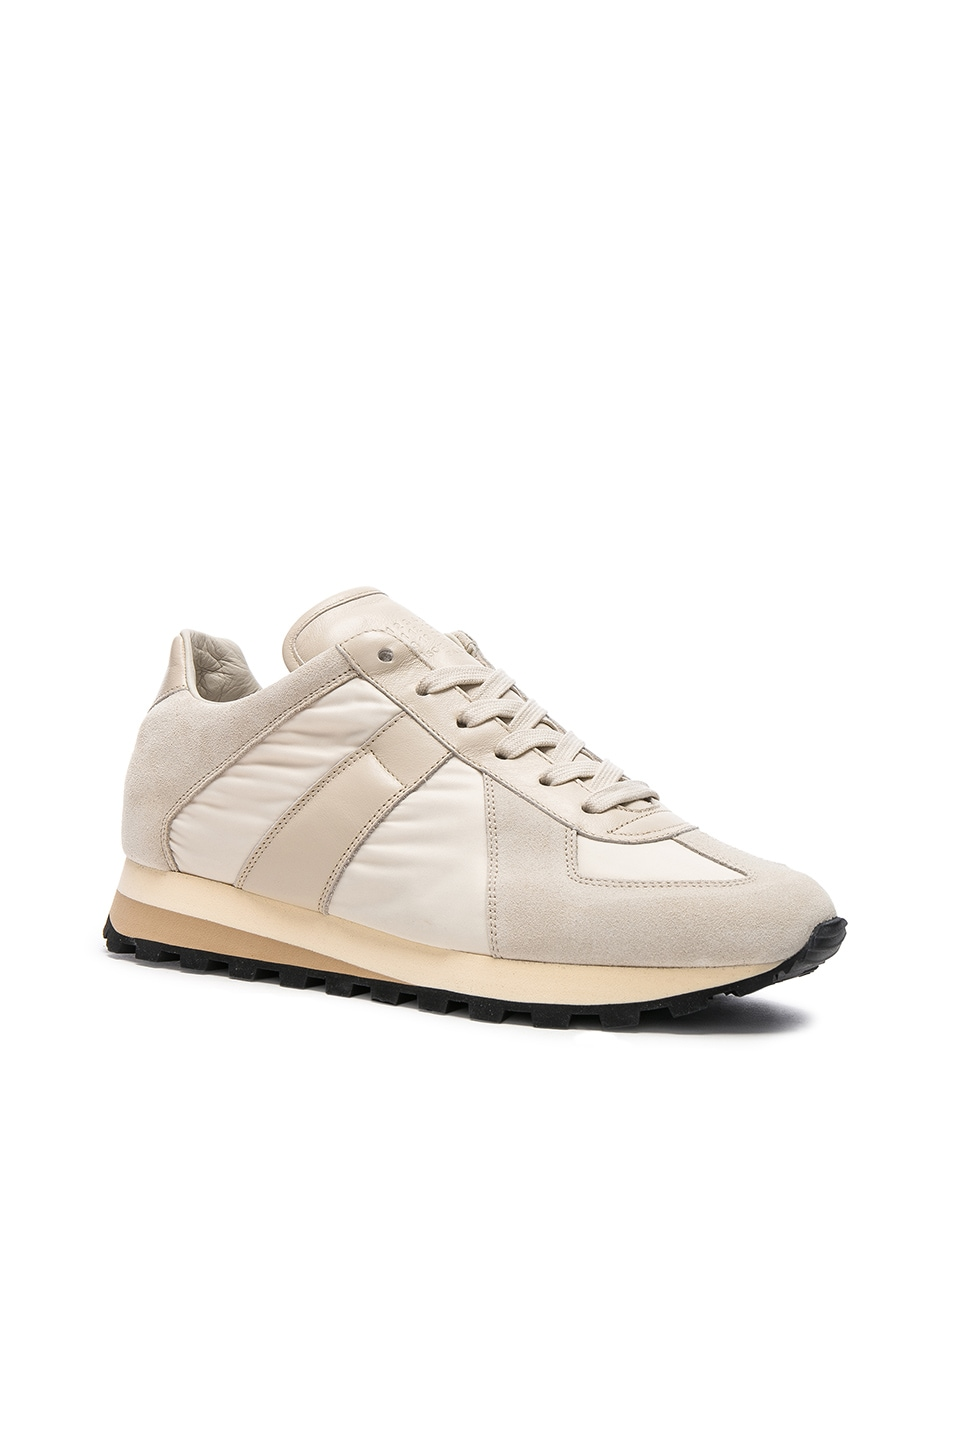 100% Authentic Online Genuine For Sale Off-White Runner Sneakers Maison Martin Margiela 8BwaeiA